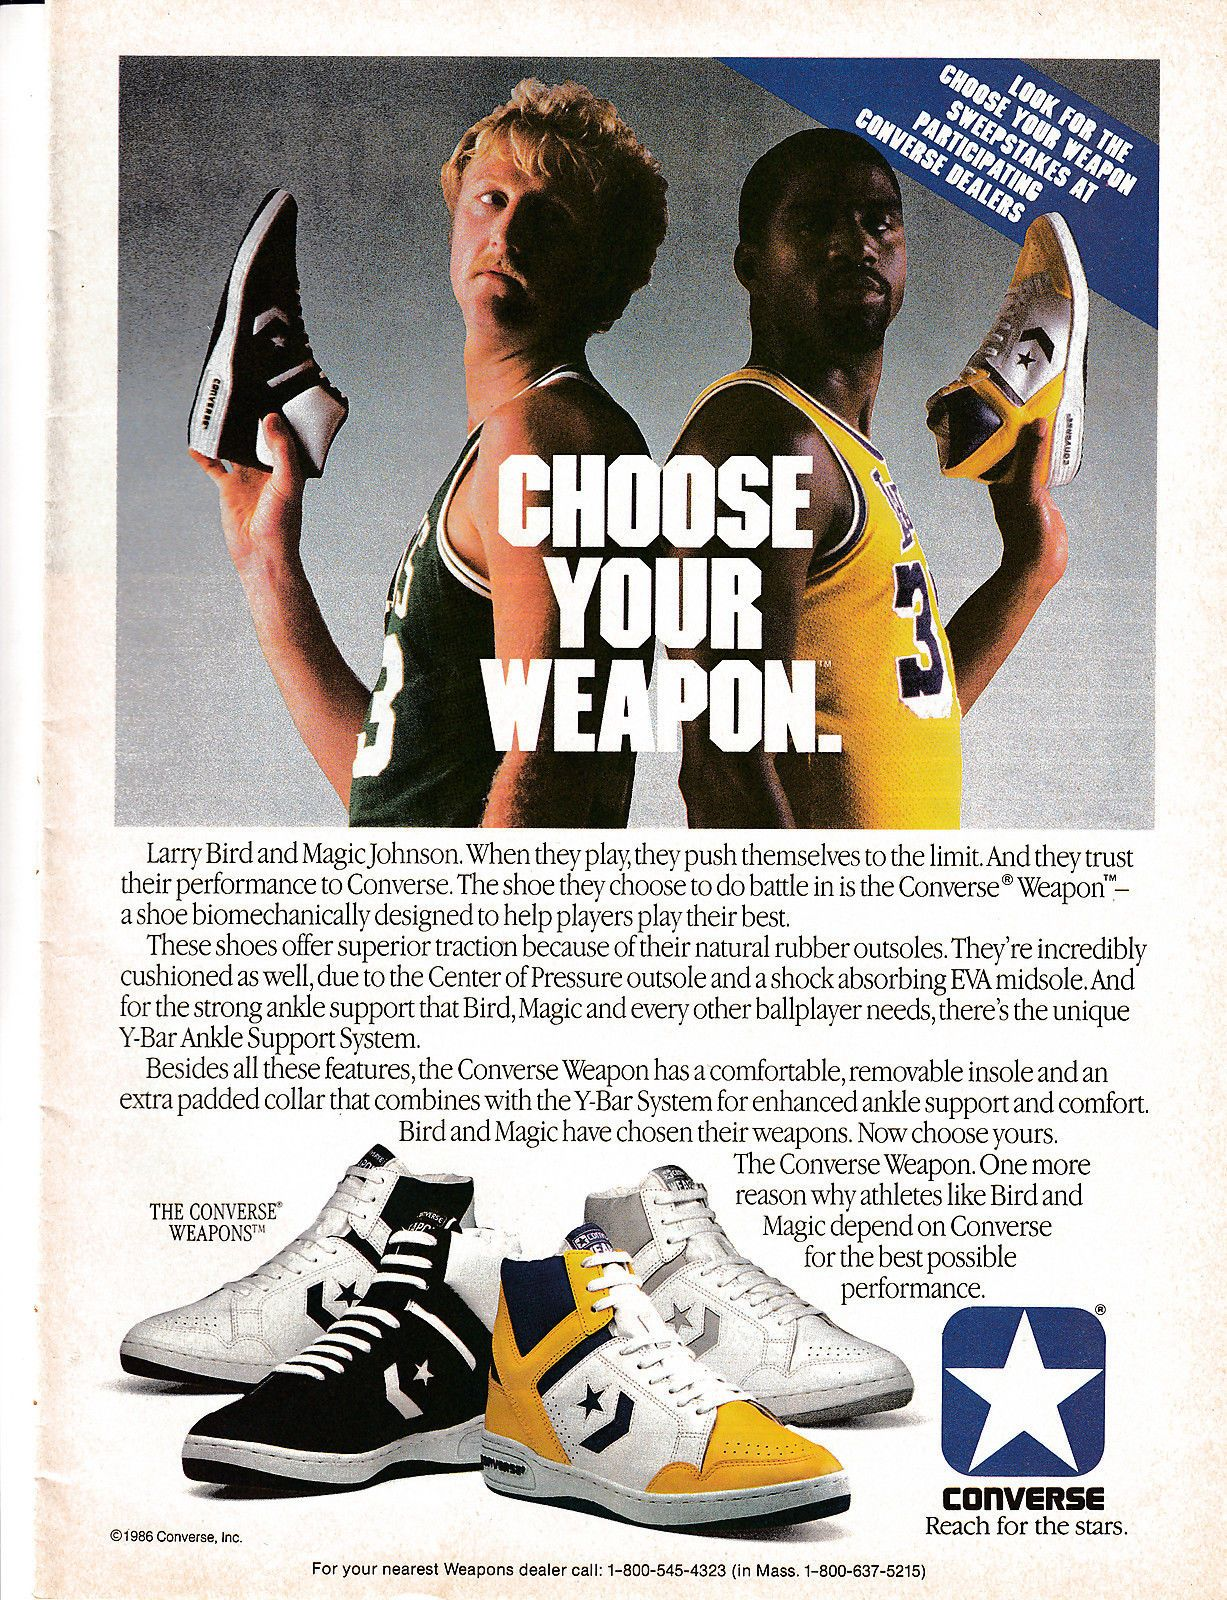 64bdae2f4fa Details about 1987 Converse Weapon Shoes Vintage Magazine Ad Larry ...